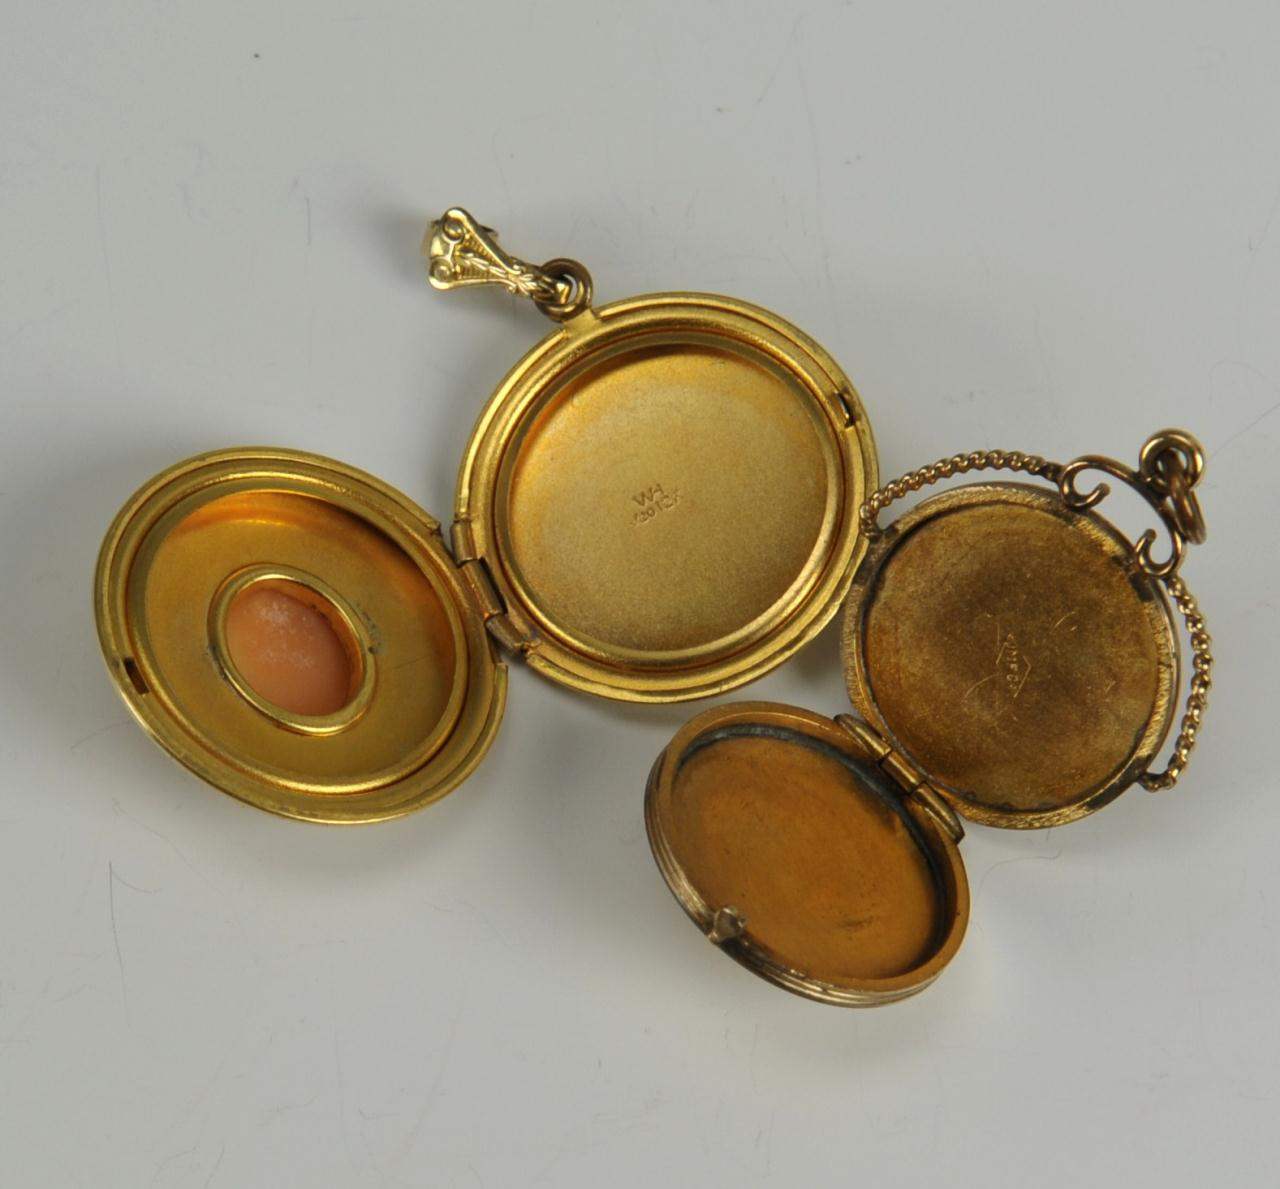 6f0b77d1a1790 Lot 728: 14 pcs of Cameo Jewelry, some 14K and 10K